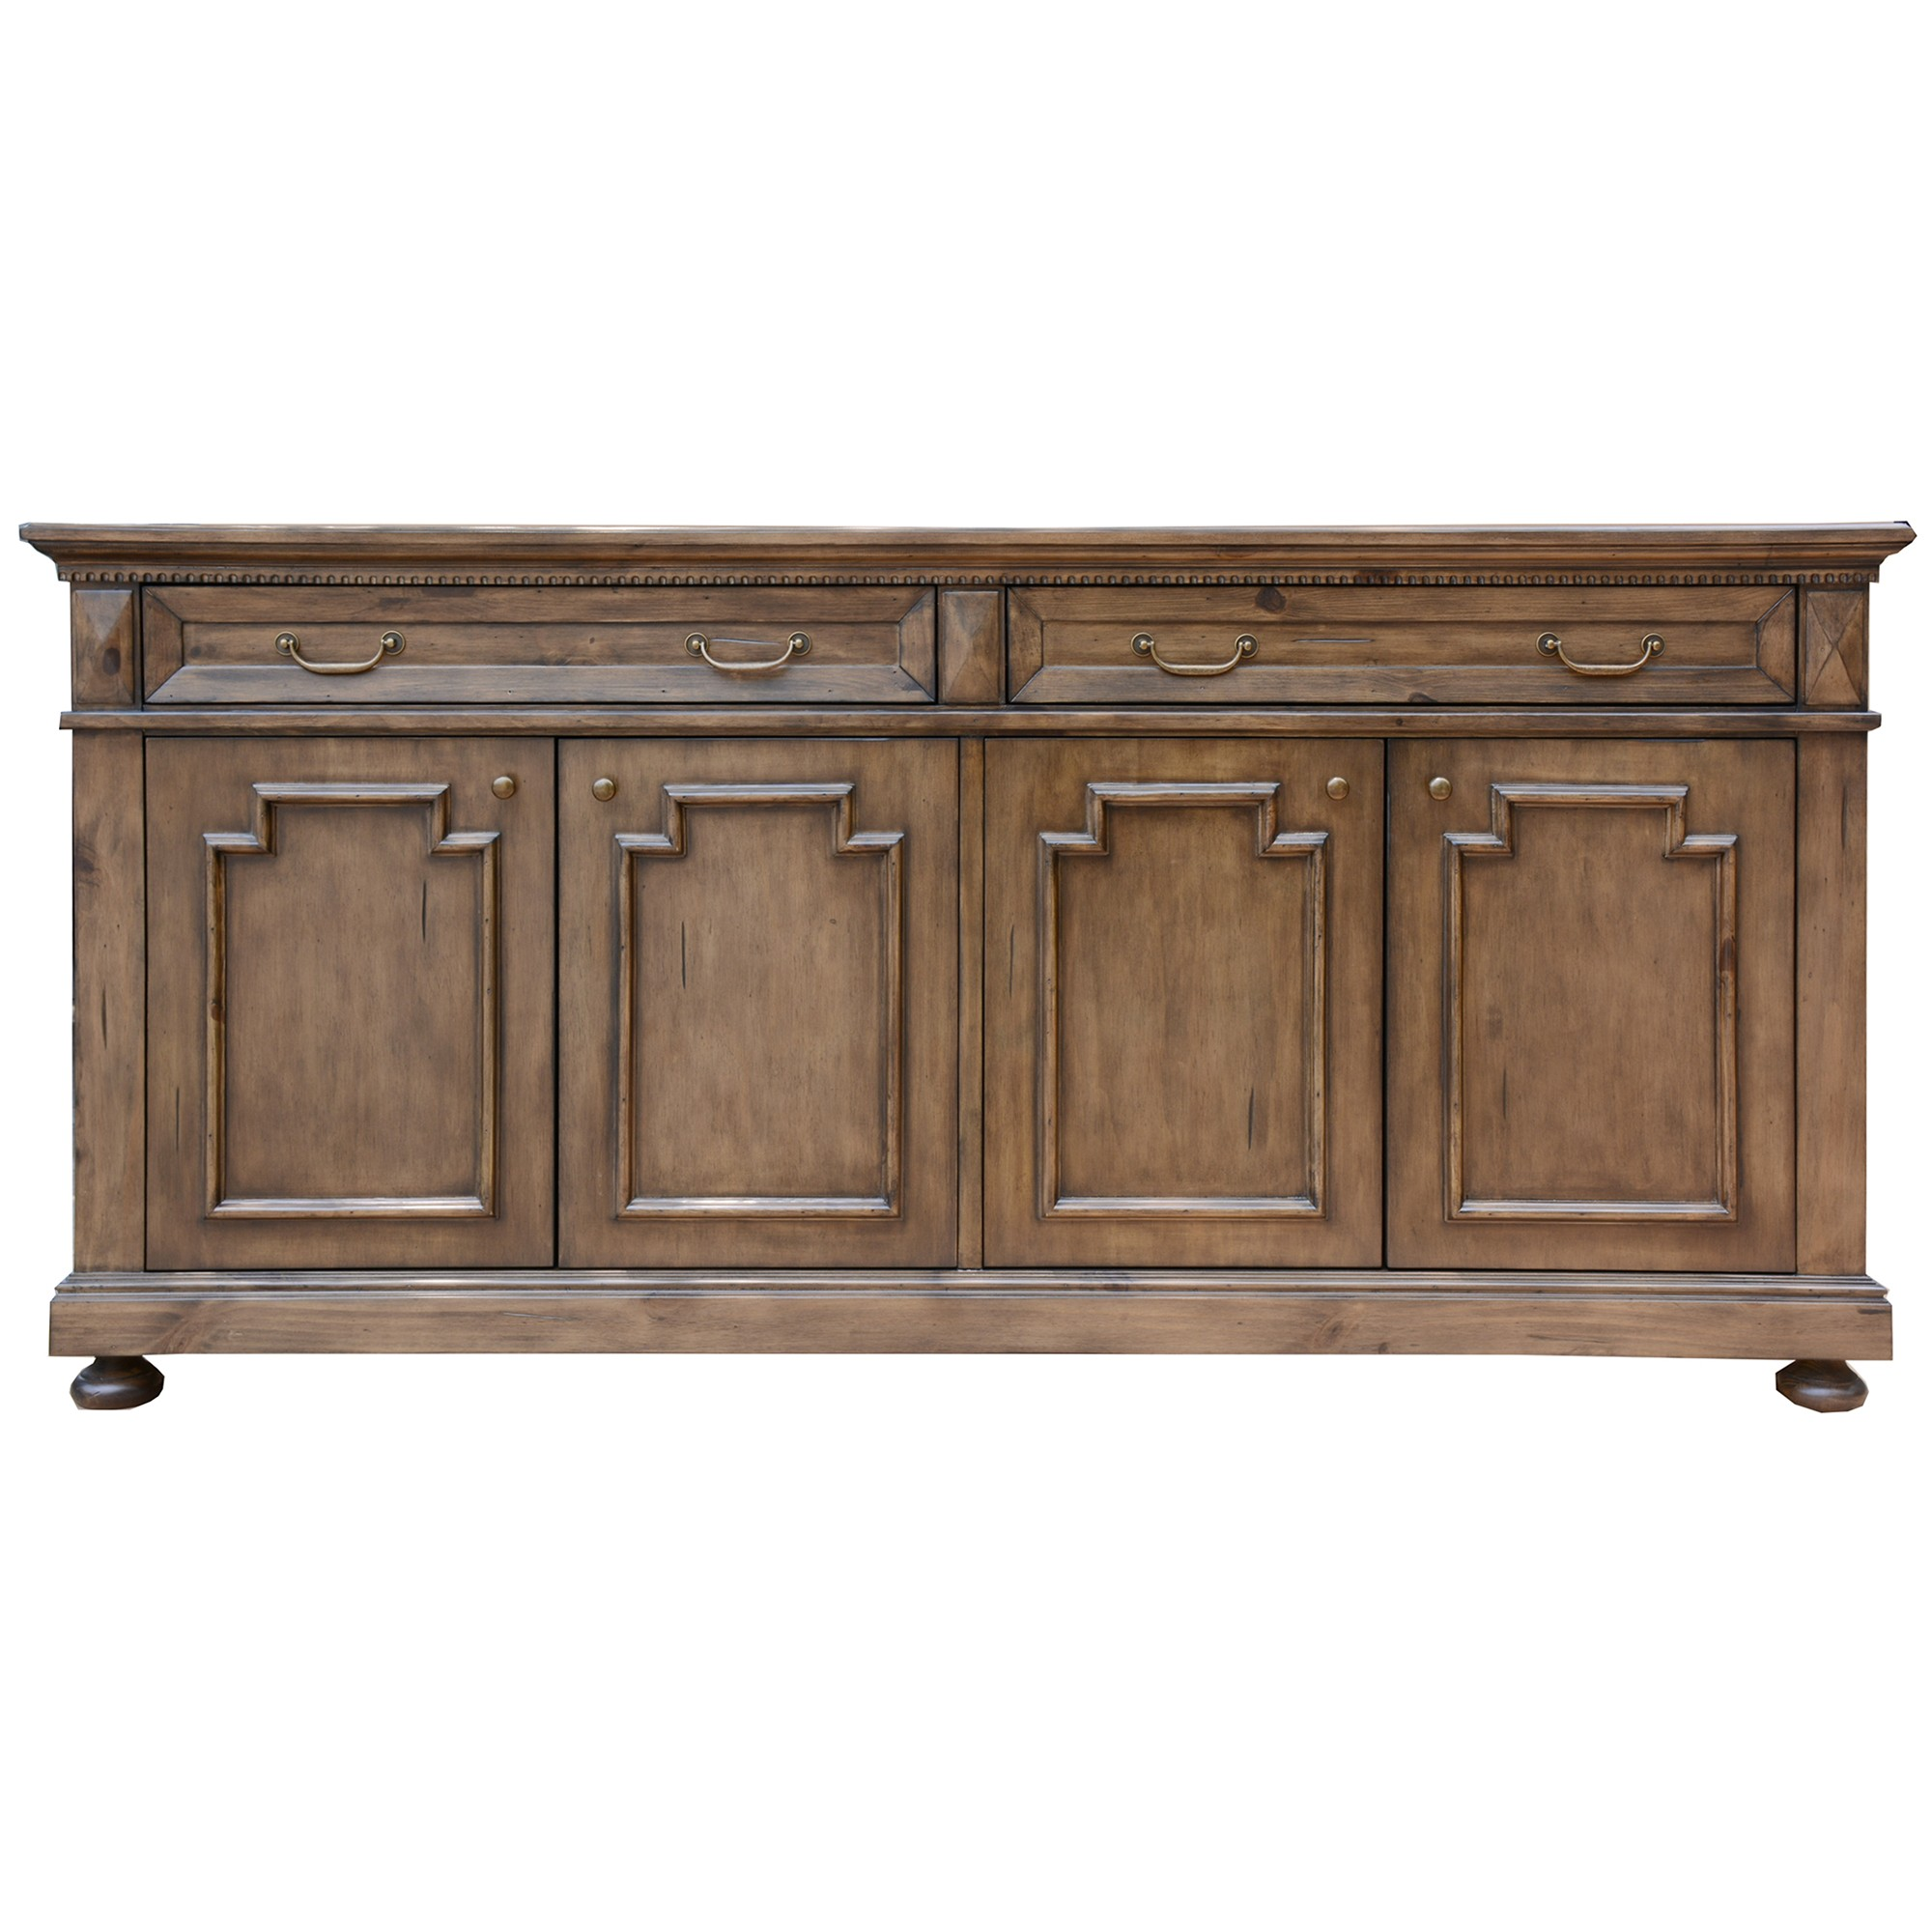 Aldreth Pine Timber 4 Door 2 Drawer Buffet Table, 190cm